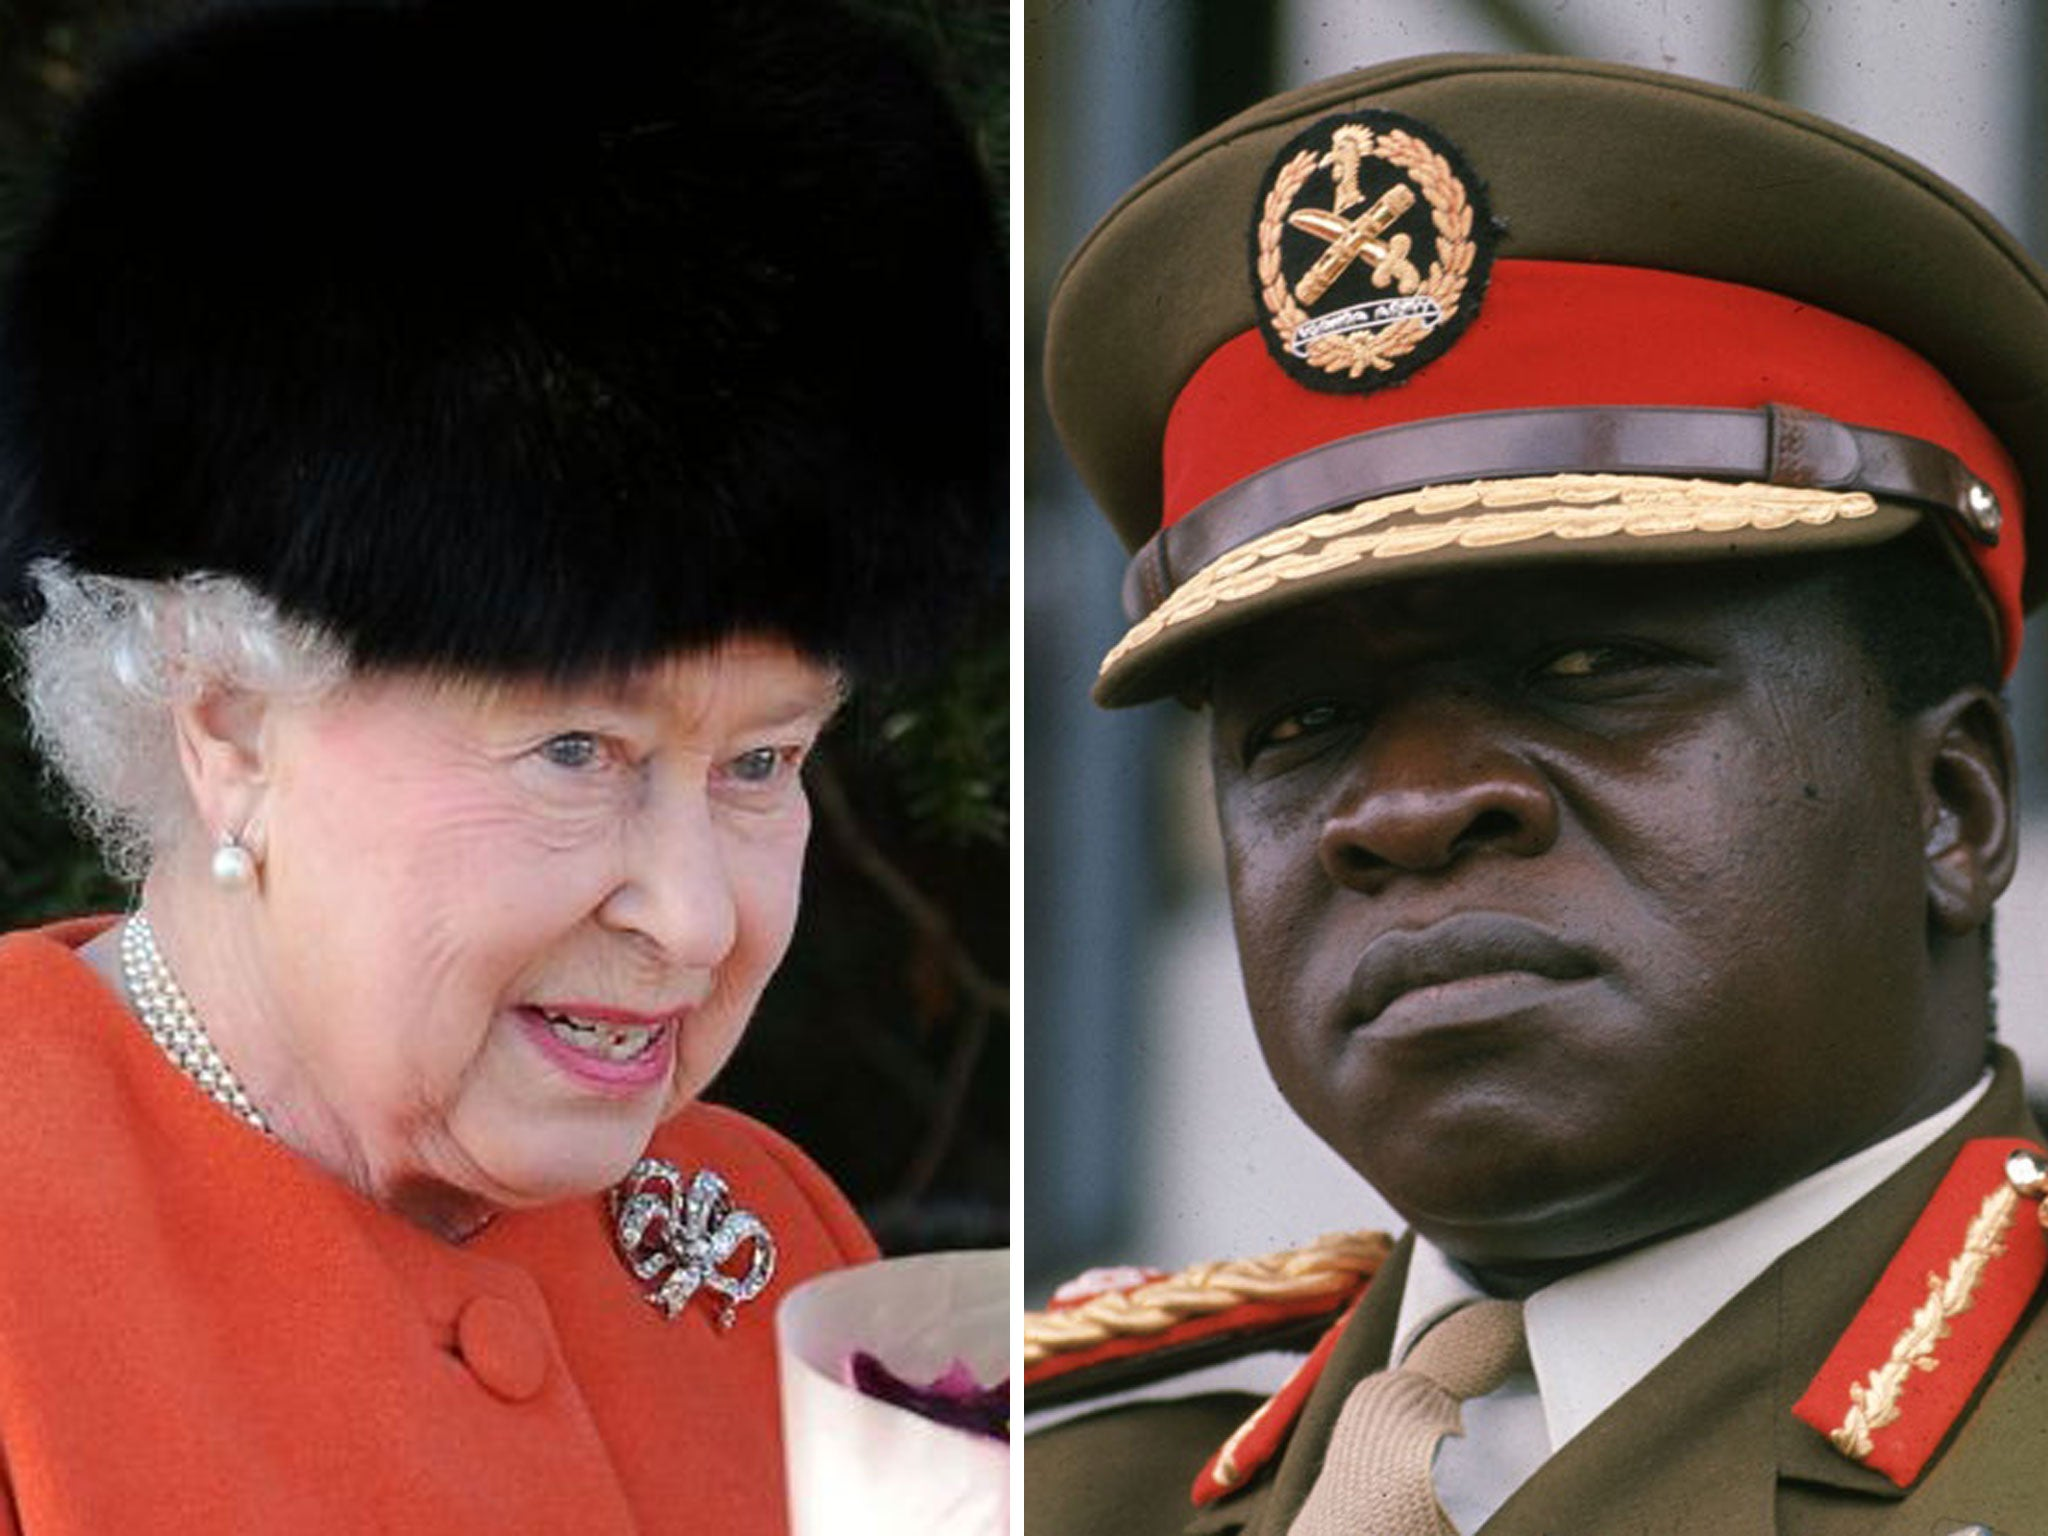 The Queen 'plotted to hit Idi Amin with a sword' if he